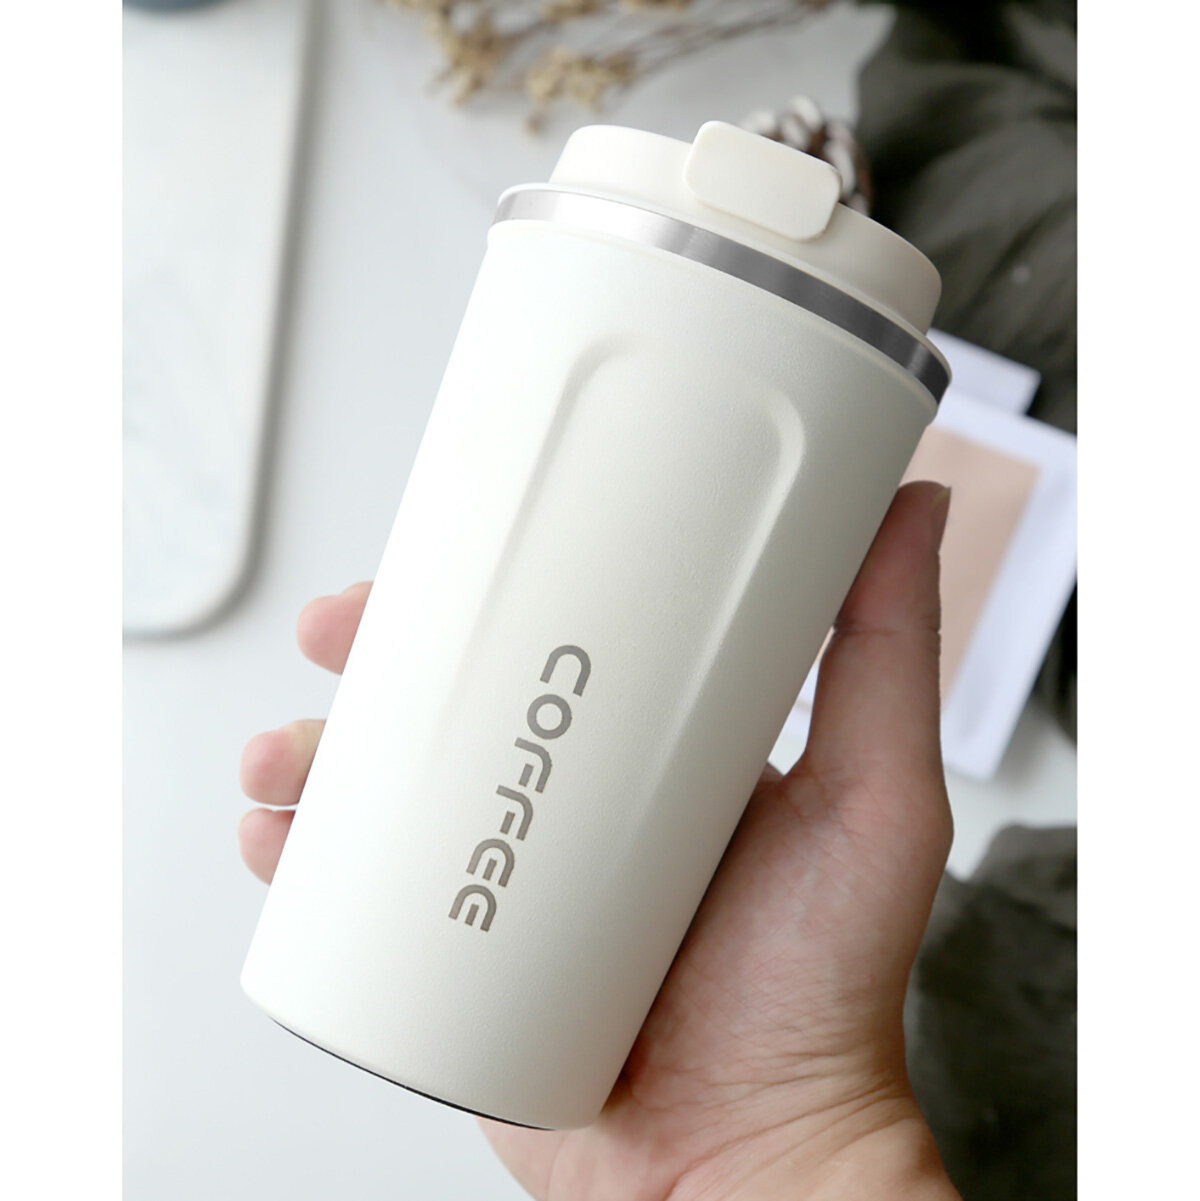 Insulated Tumbler Coffee Travel Mug Vacuum Insulated Coffee Tea Cup Stainless Steel with Screw on Lid Leak Proof Keep Ho фото